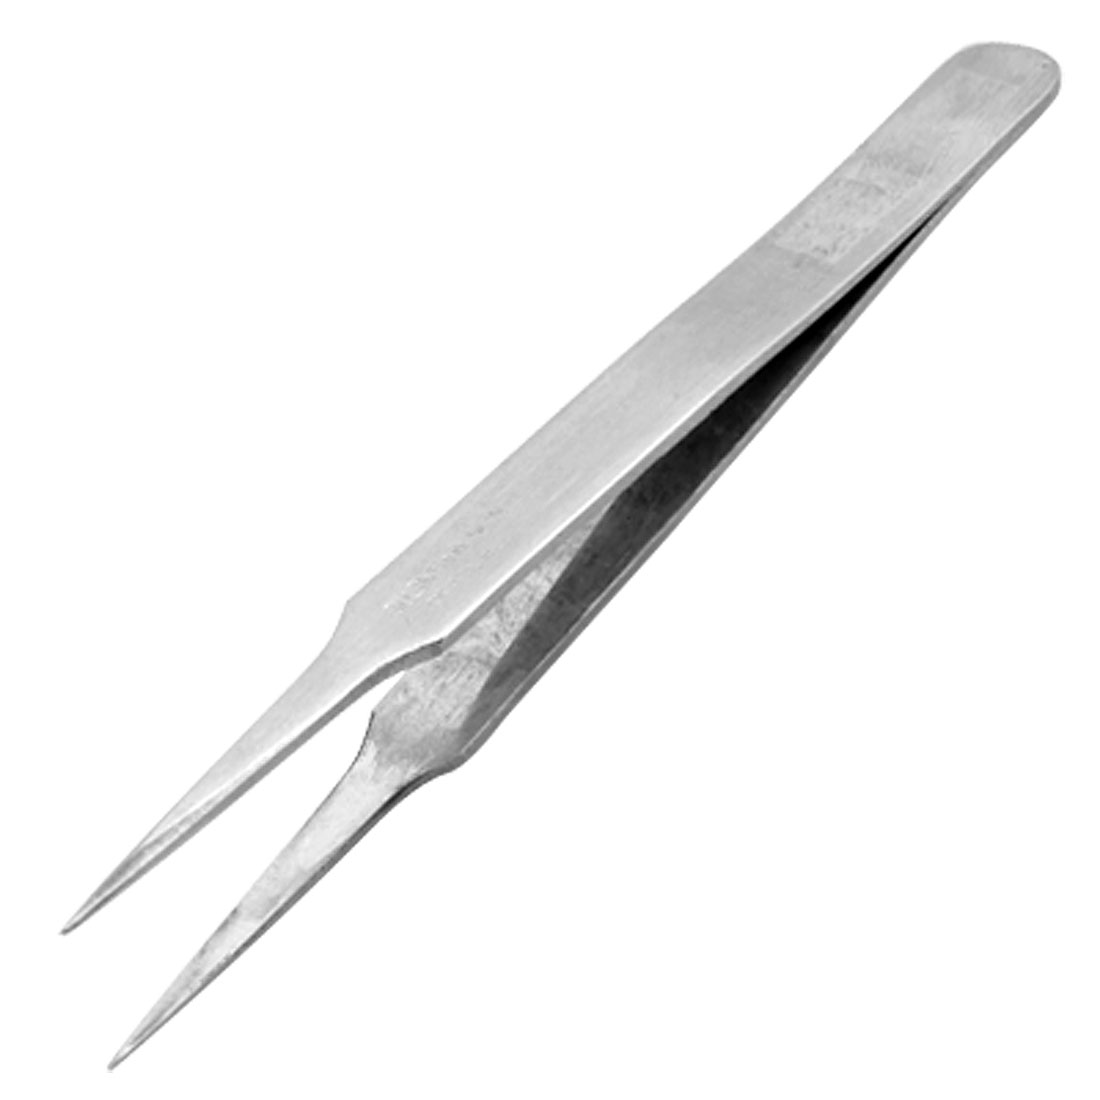 12CM Length Silver Tone Forceps Straight Pointy Tweezers